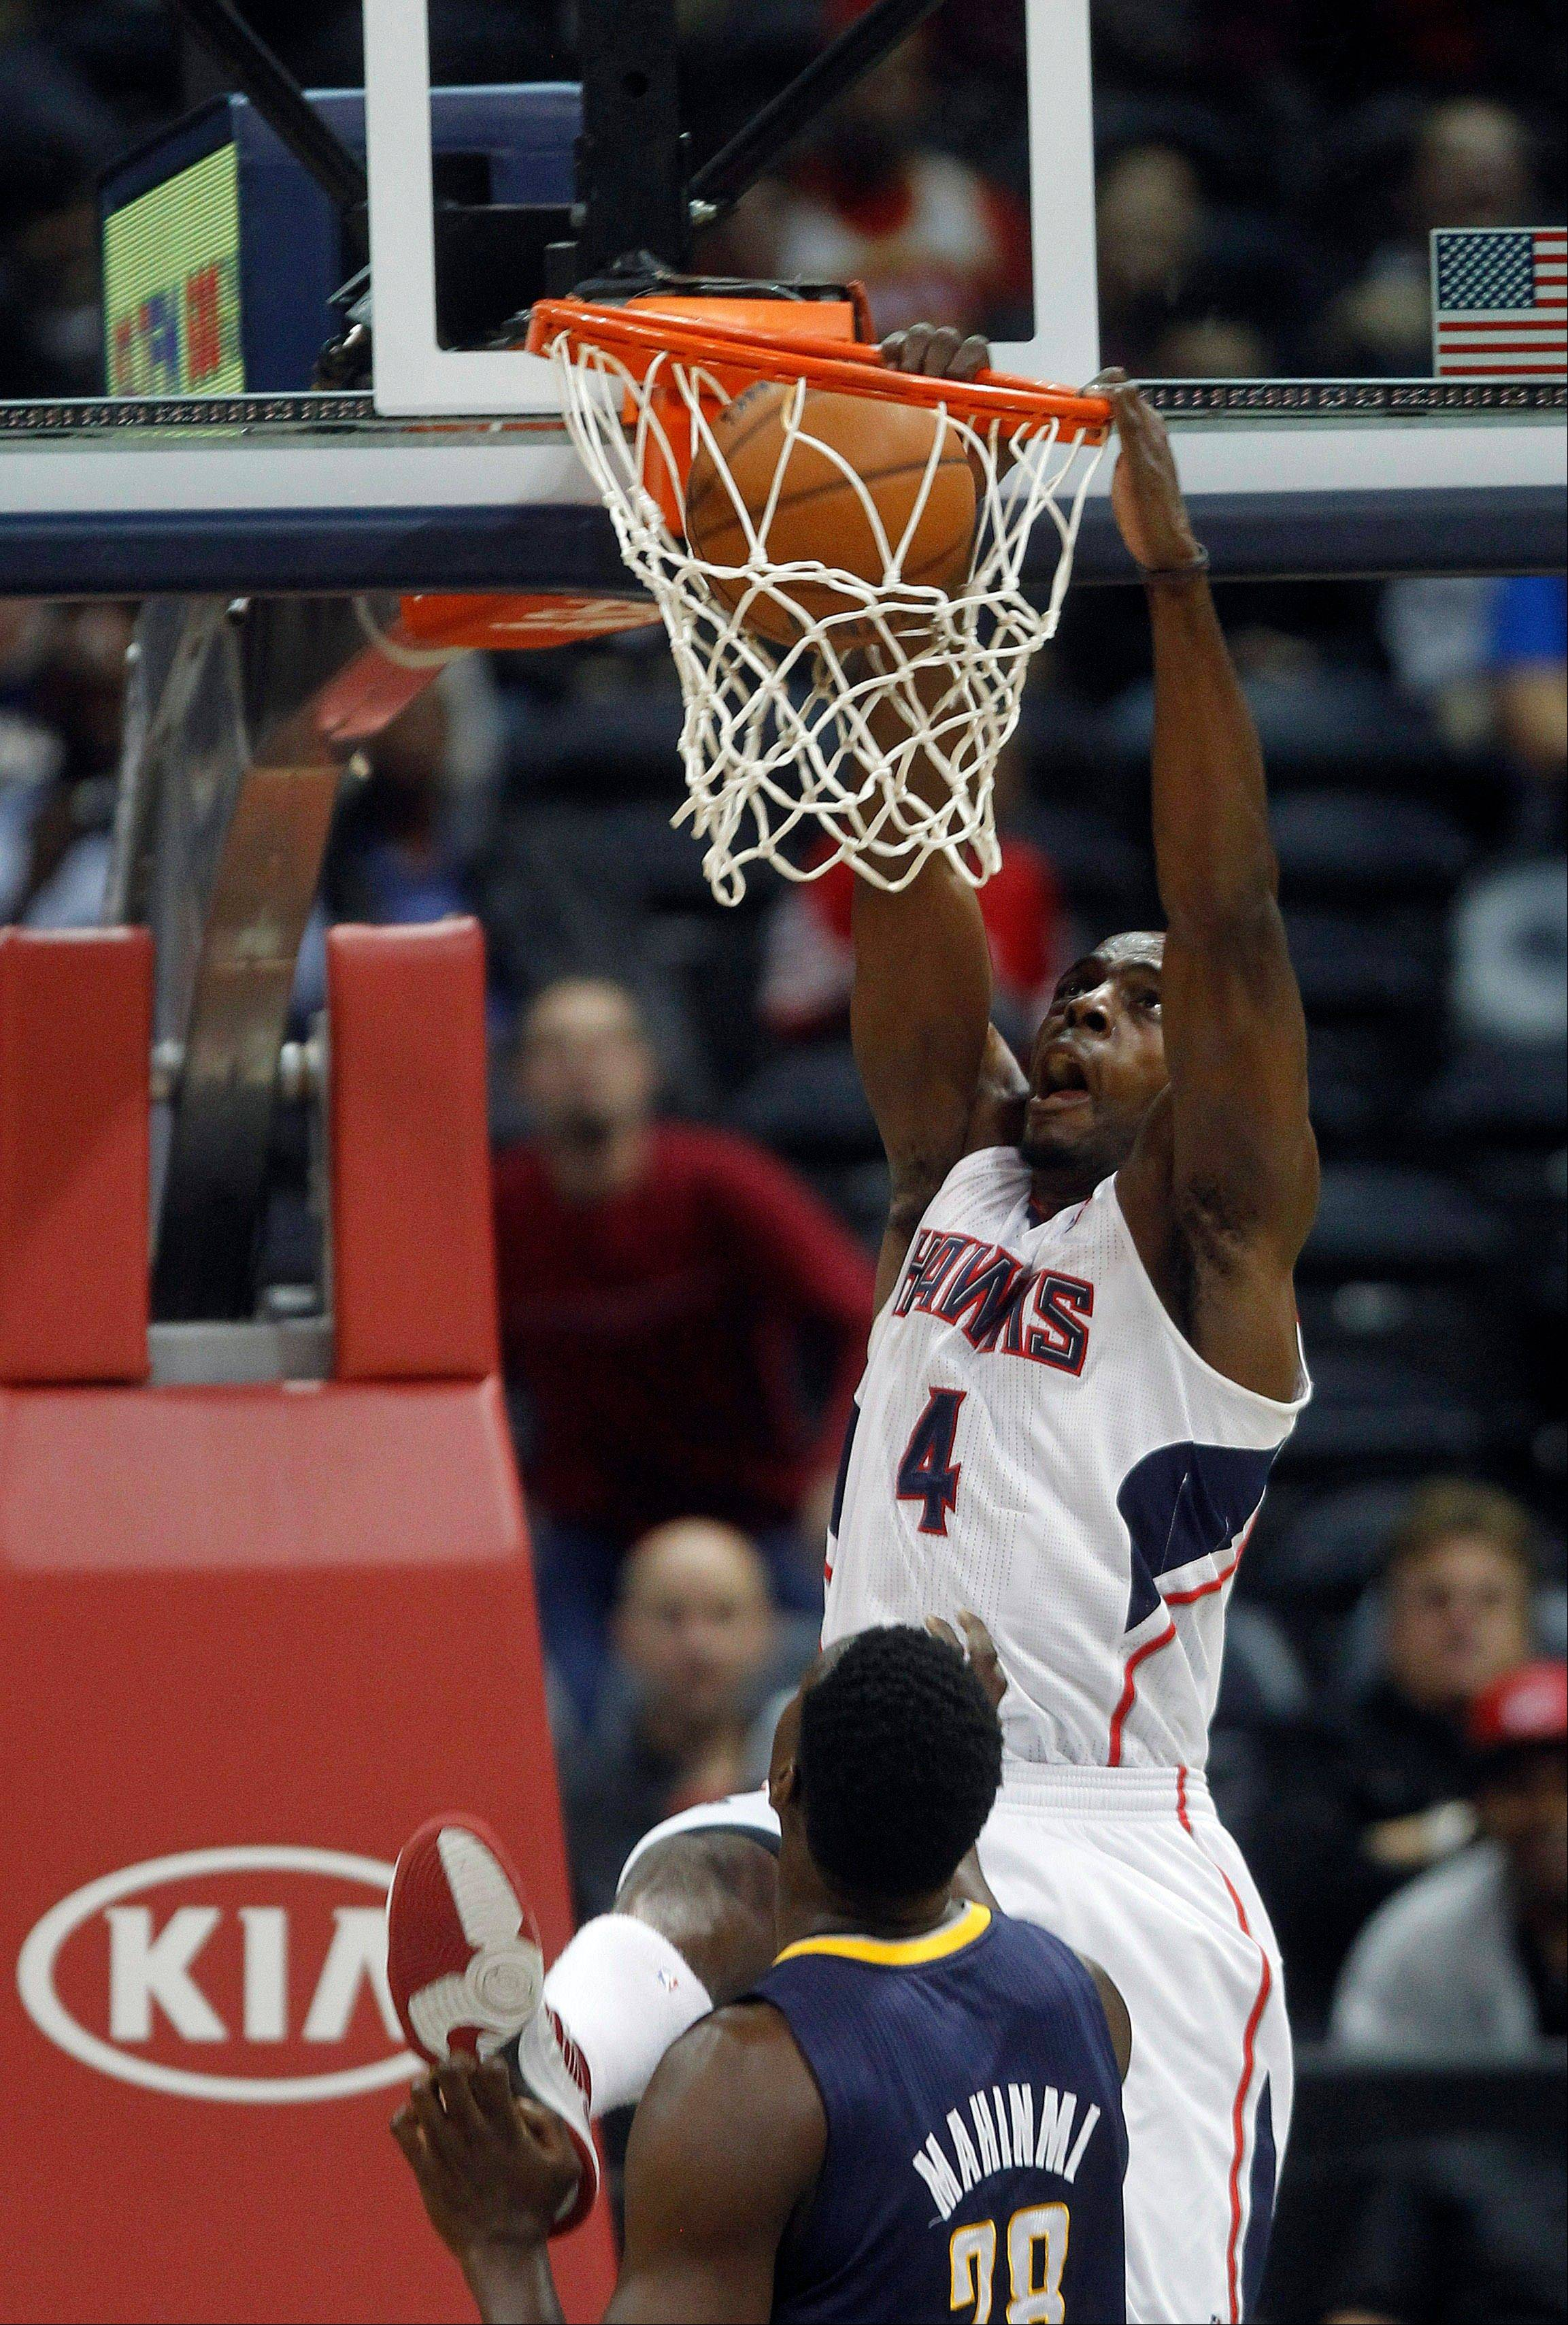 Atlanta Hawks power forward Anthony Tolliver scores as Indiana Pacers center Ian Mahinmi defends Wednesday in the first half in Atlanta.